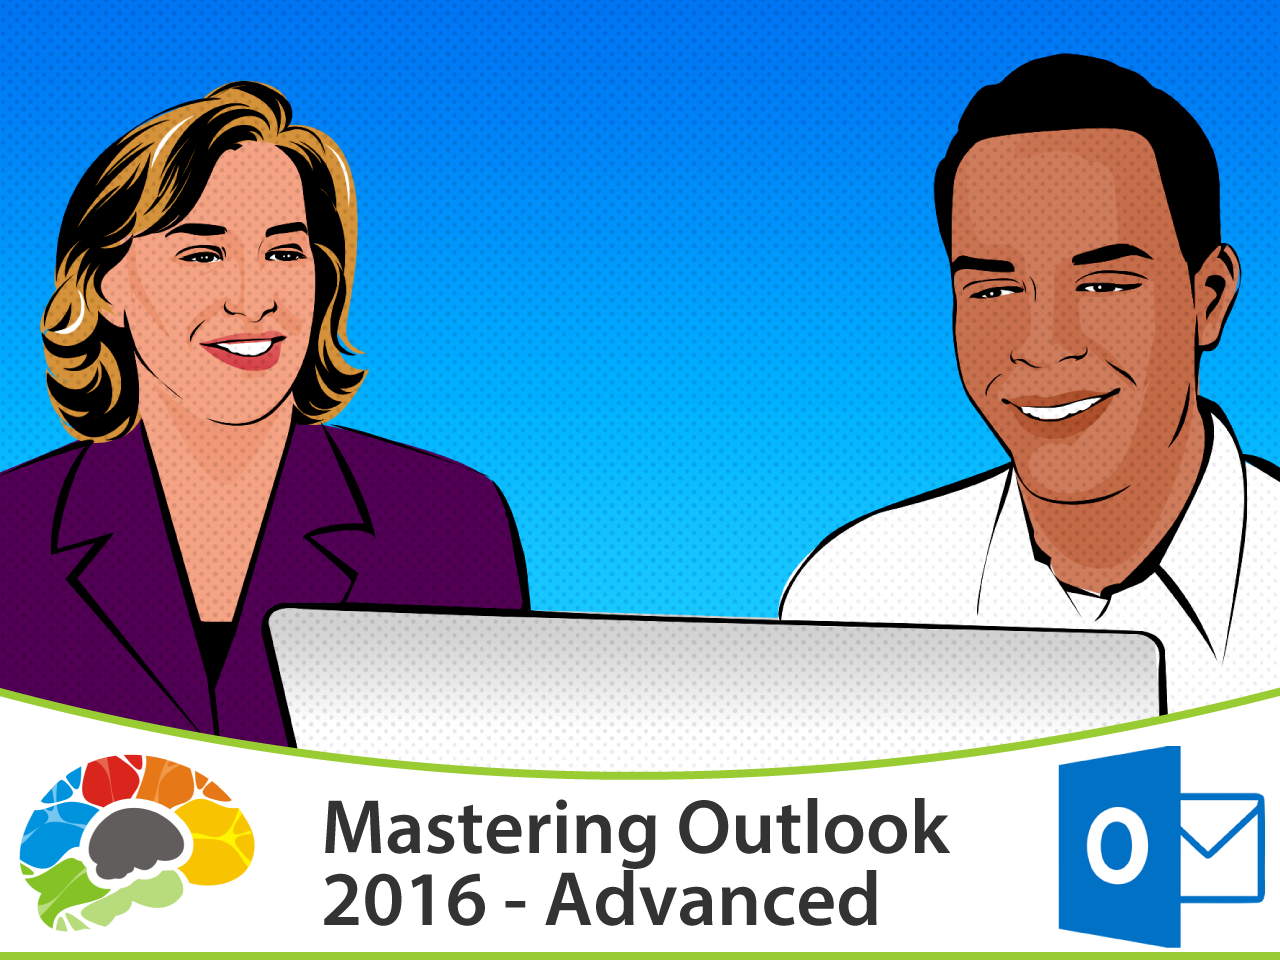 Mastering Outlook 2016 (full course), Singapore SKillsFuture elarning online course